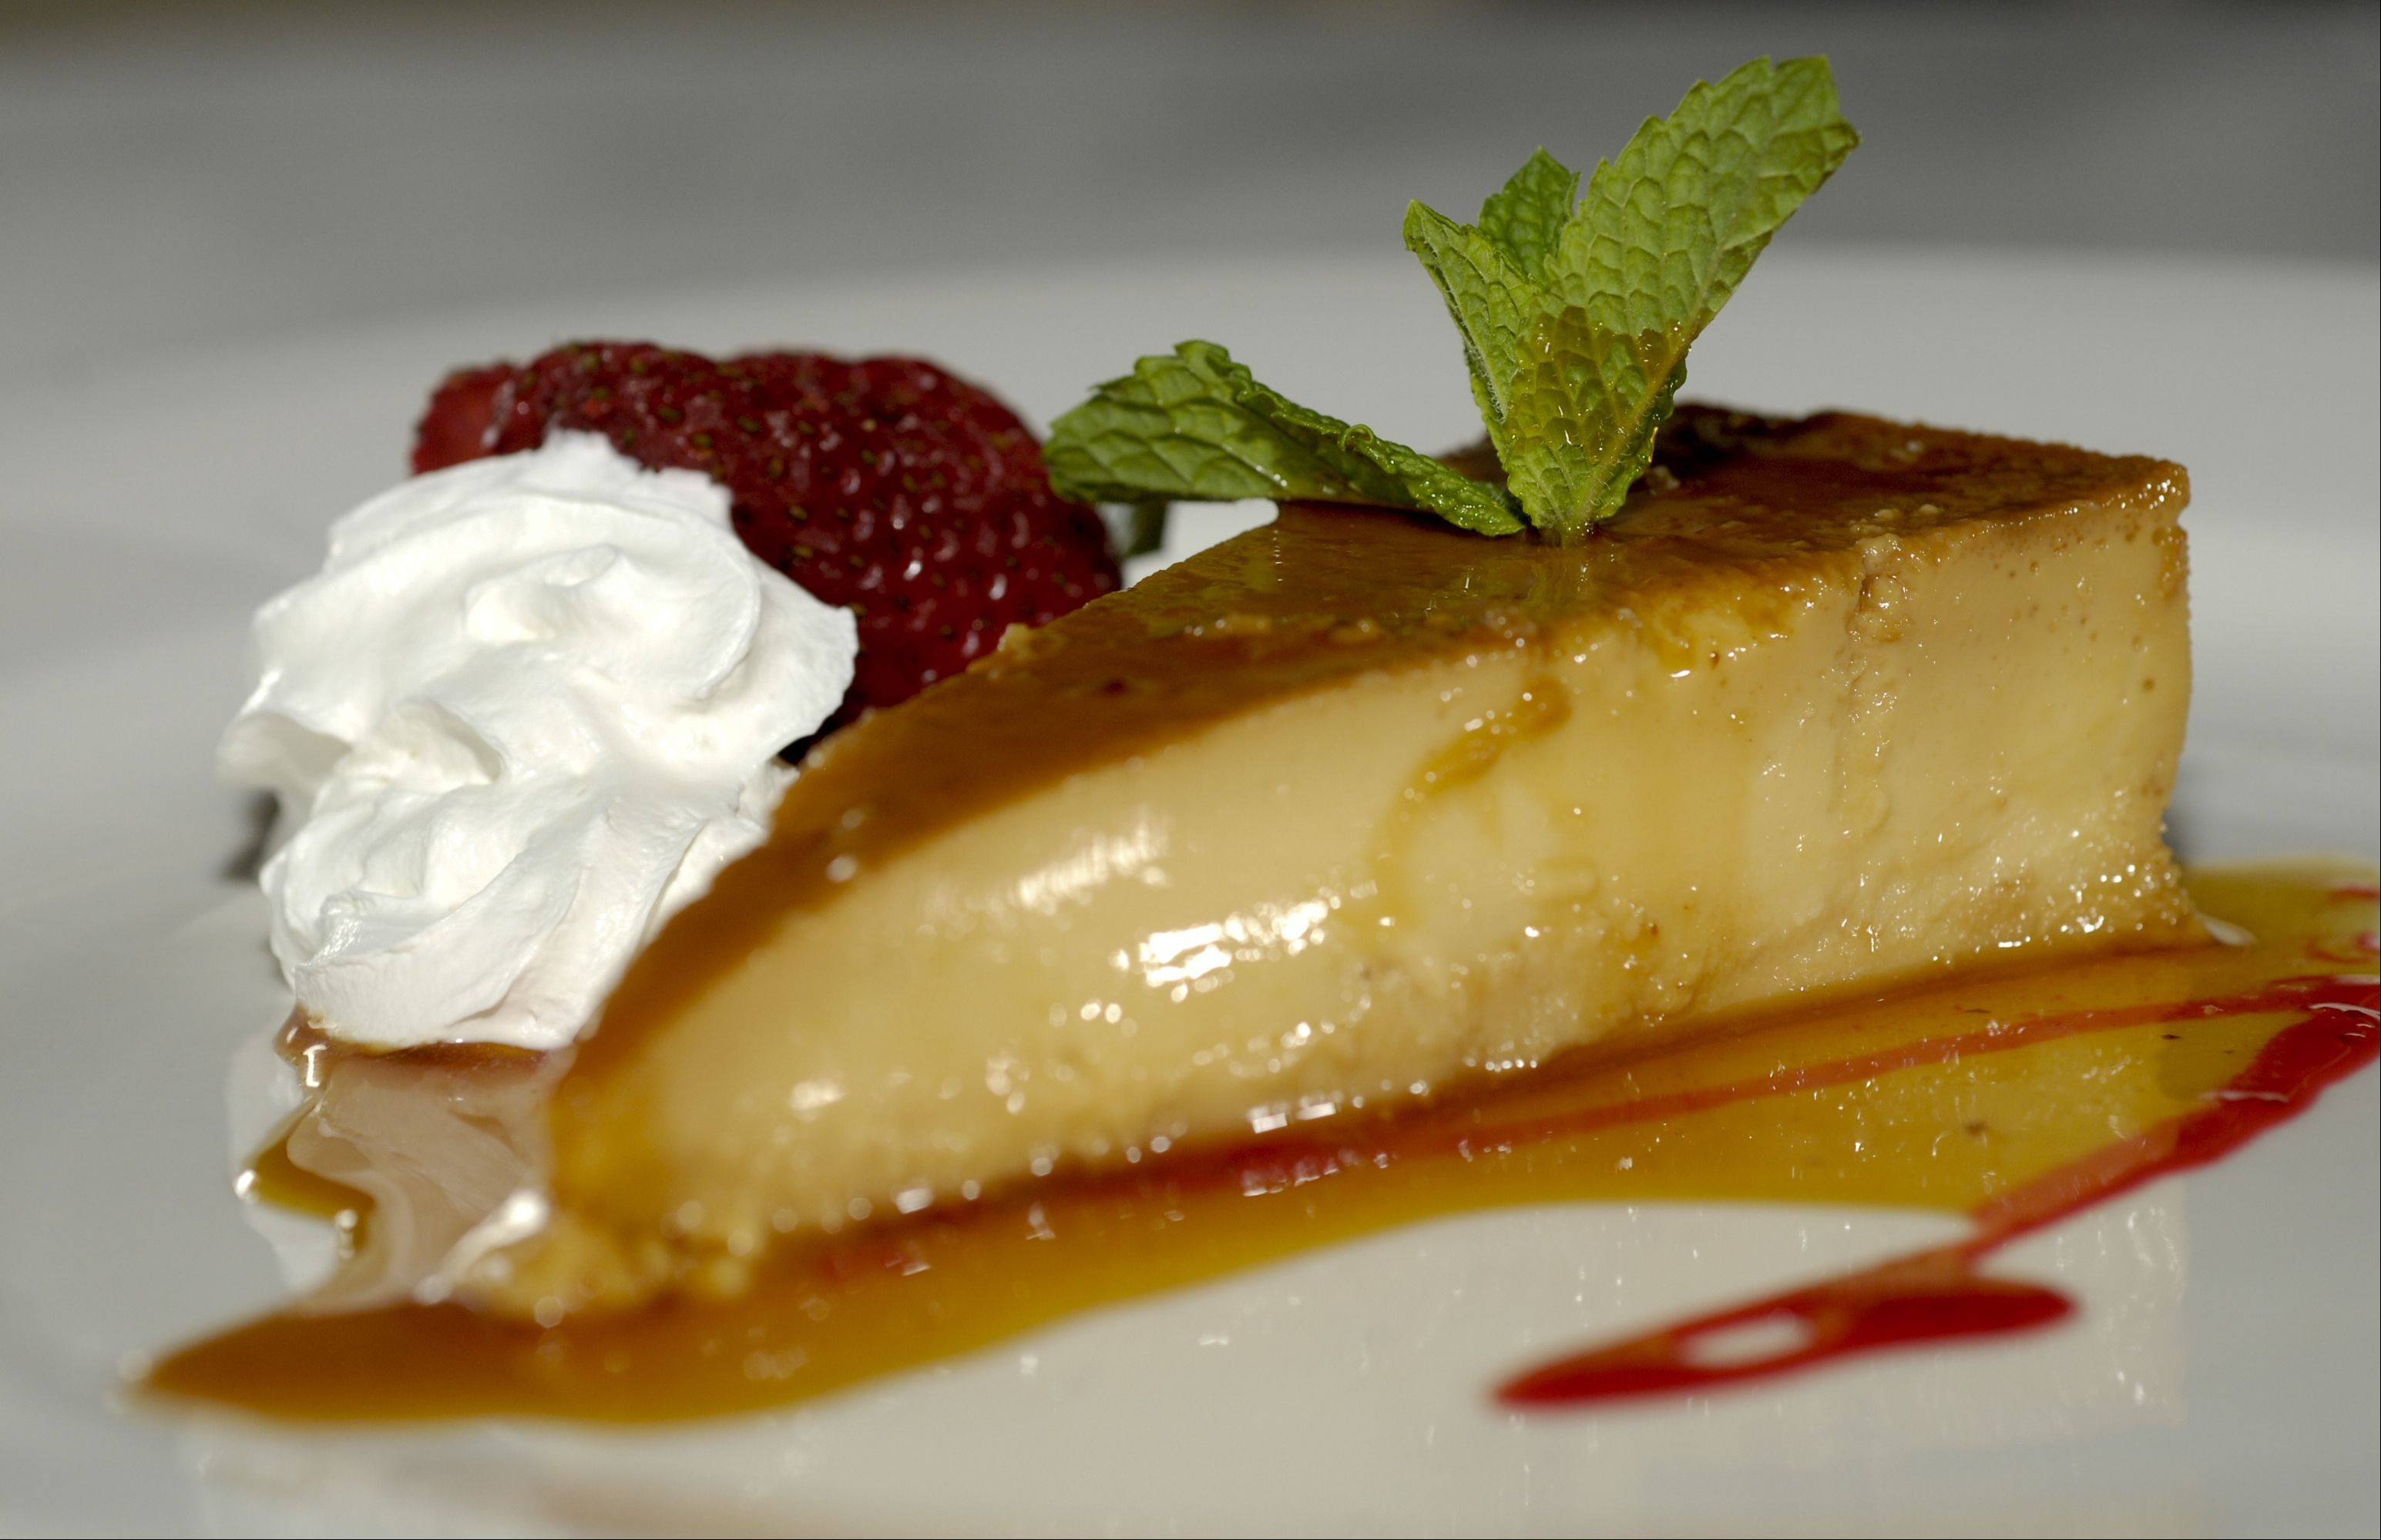 Peruvian flan is a fine way to end a meal at Rio's in Addison.